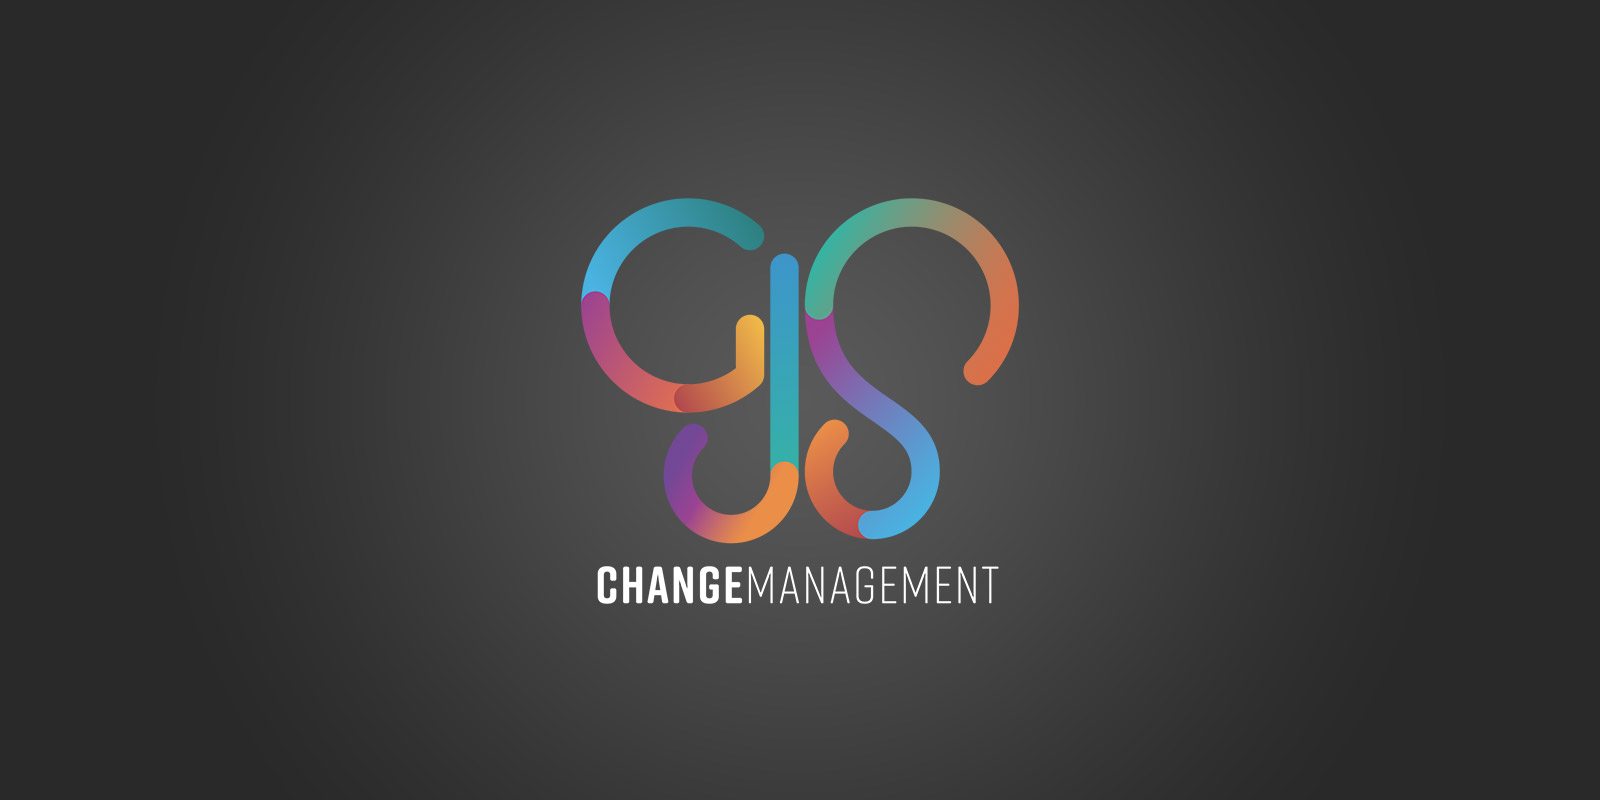 GJS Change Management Logo and Branding